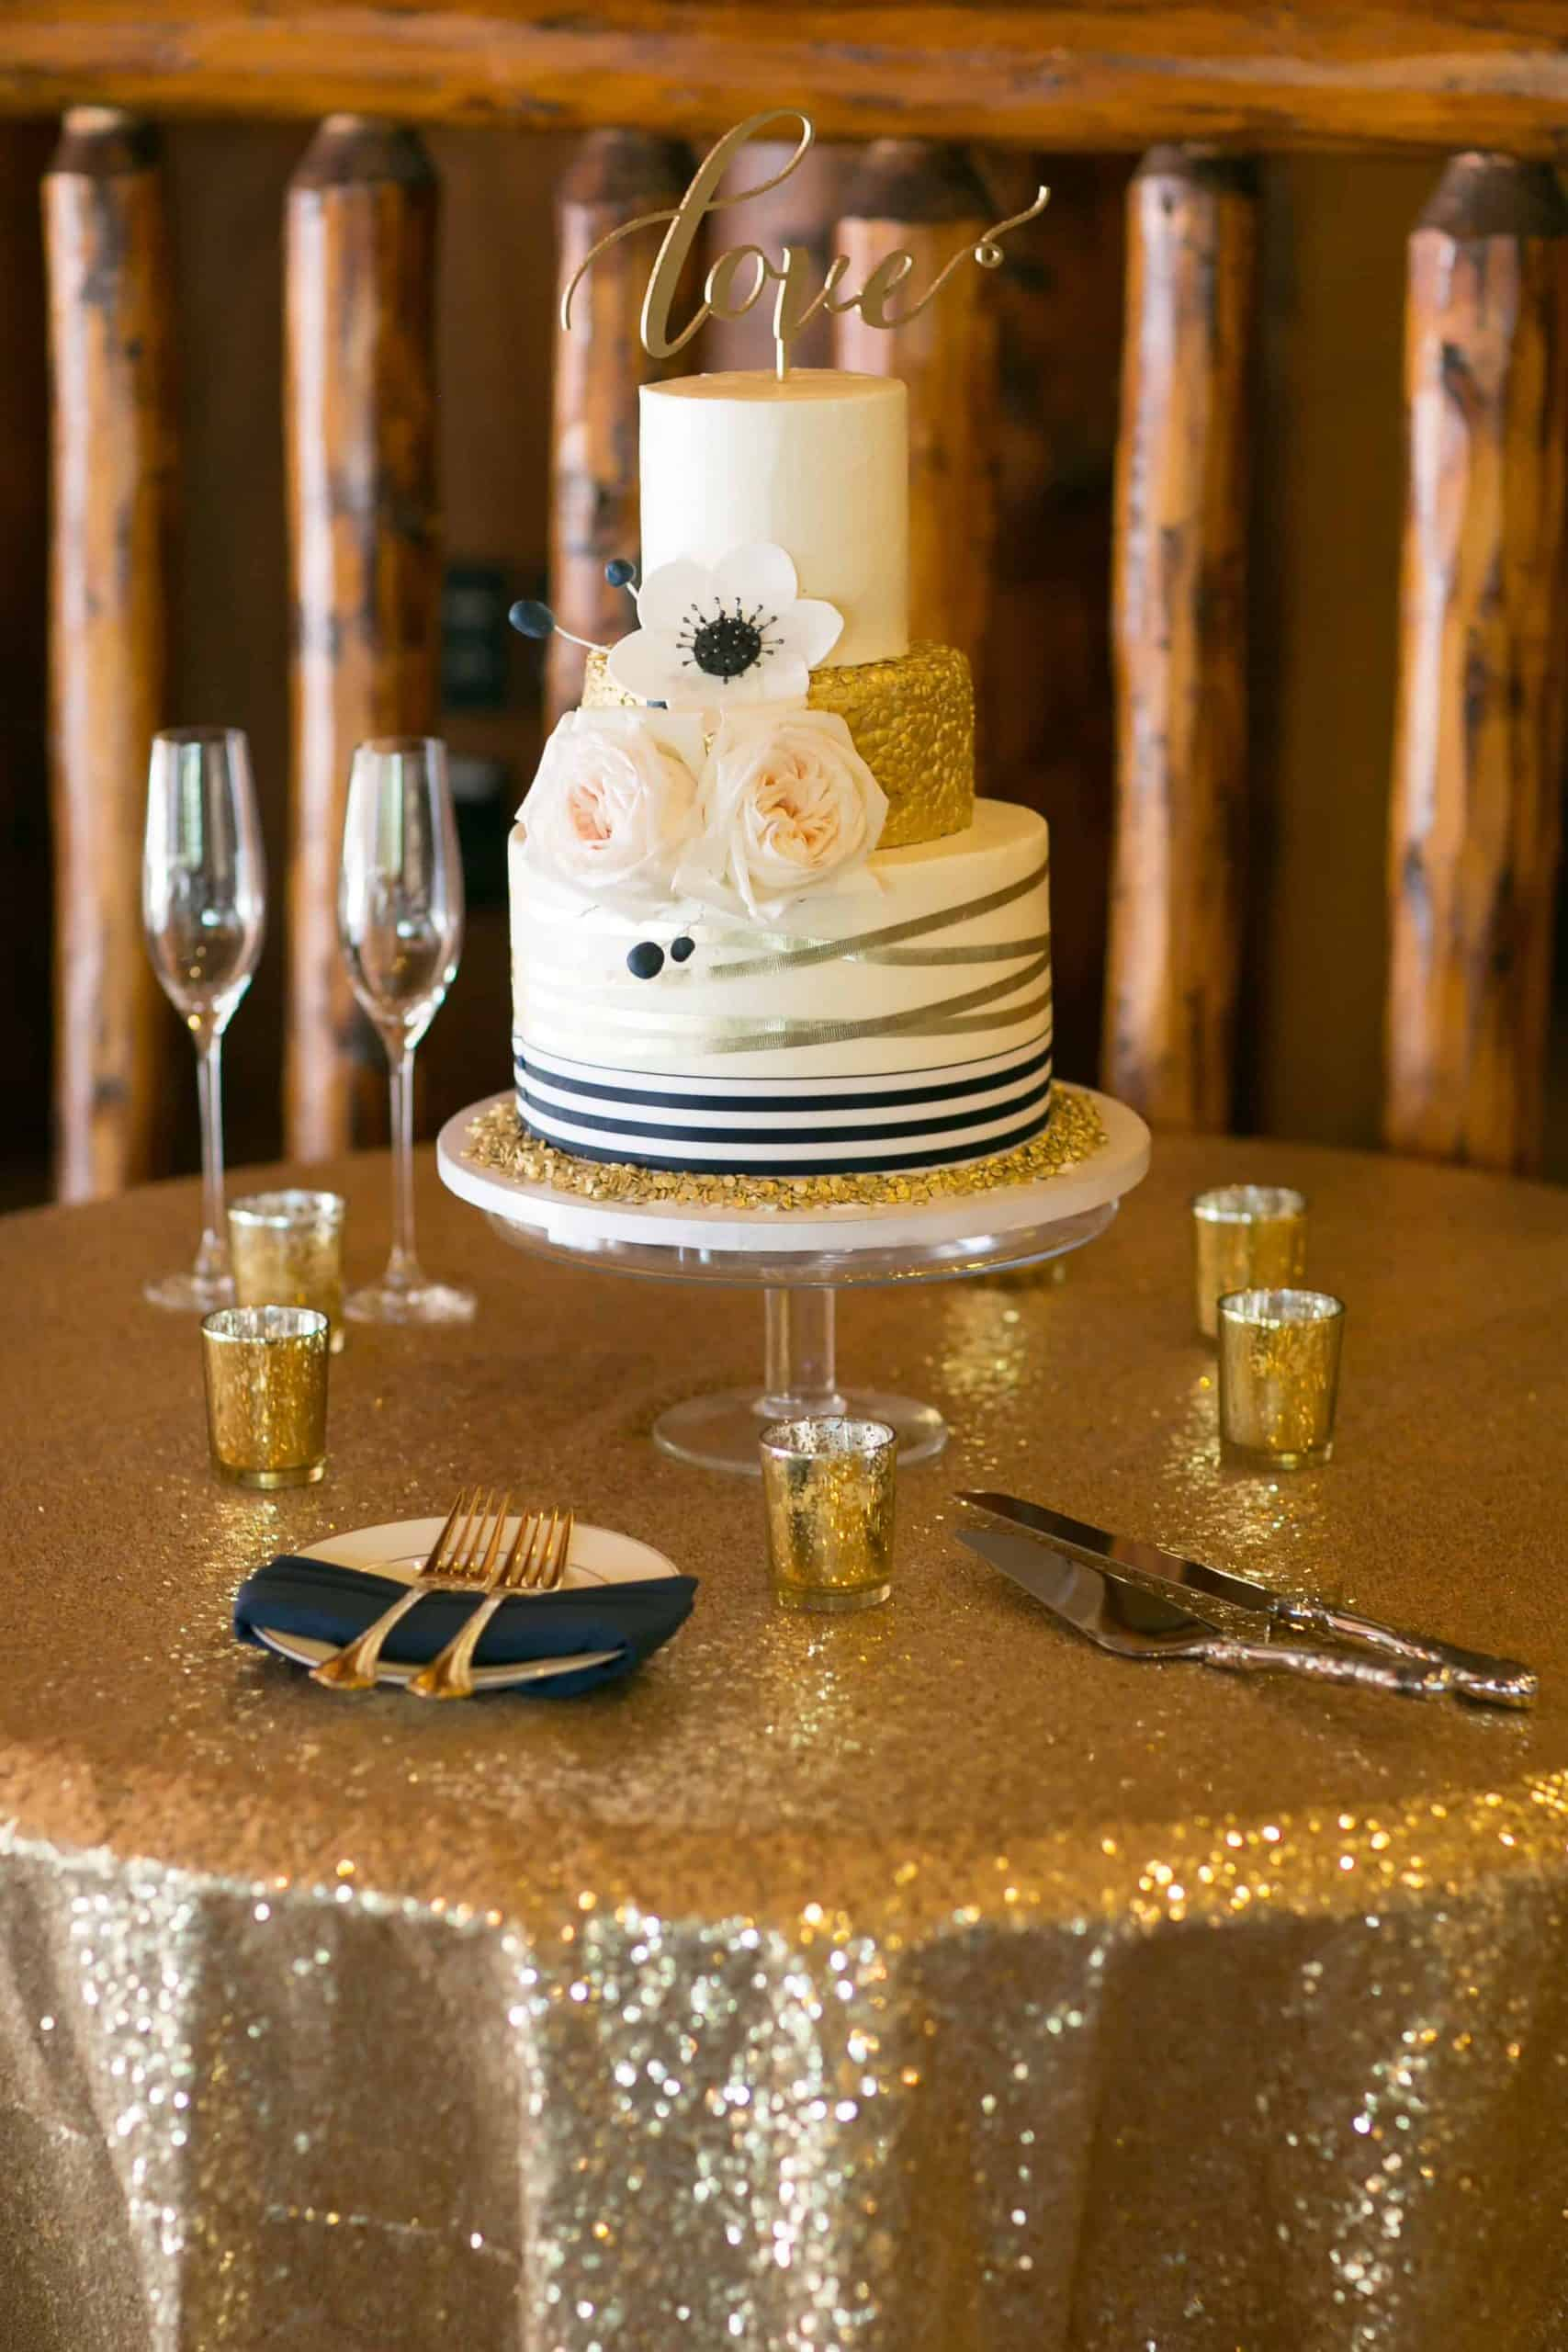 Wedding Cake with Gold Tier and Gold Ribbon Alison Emerick